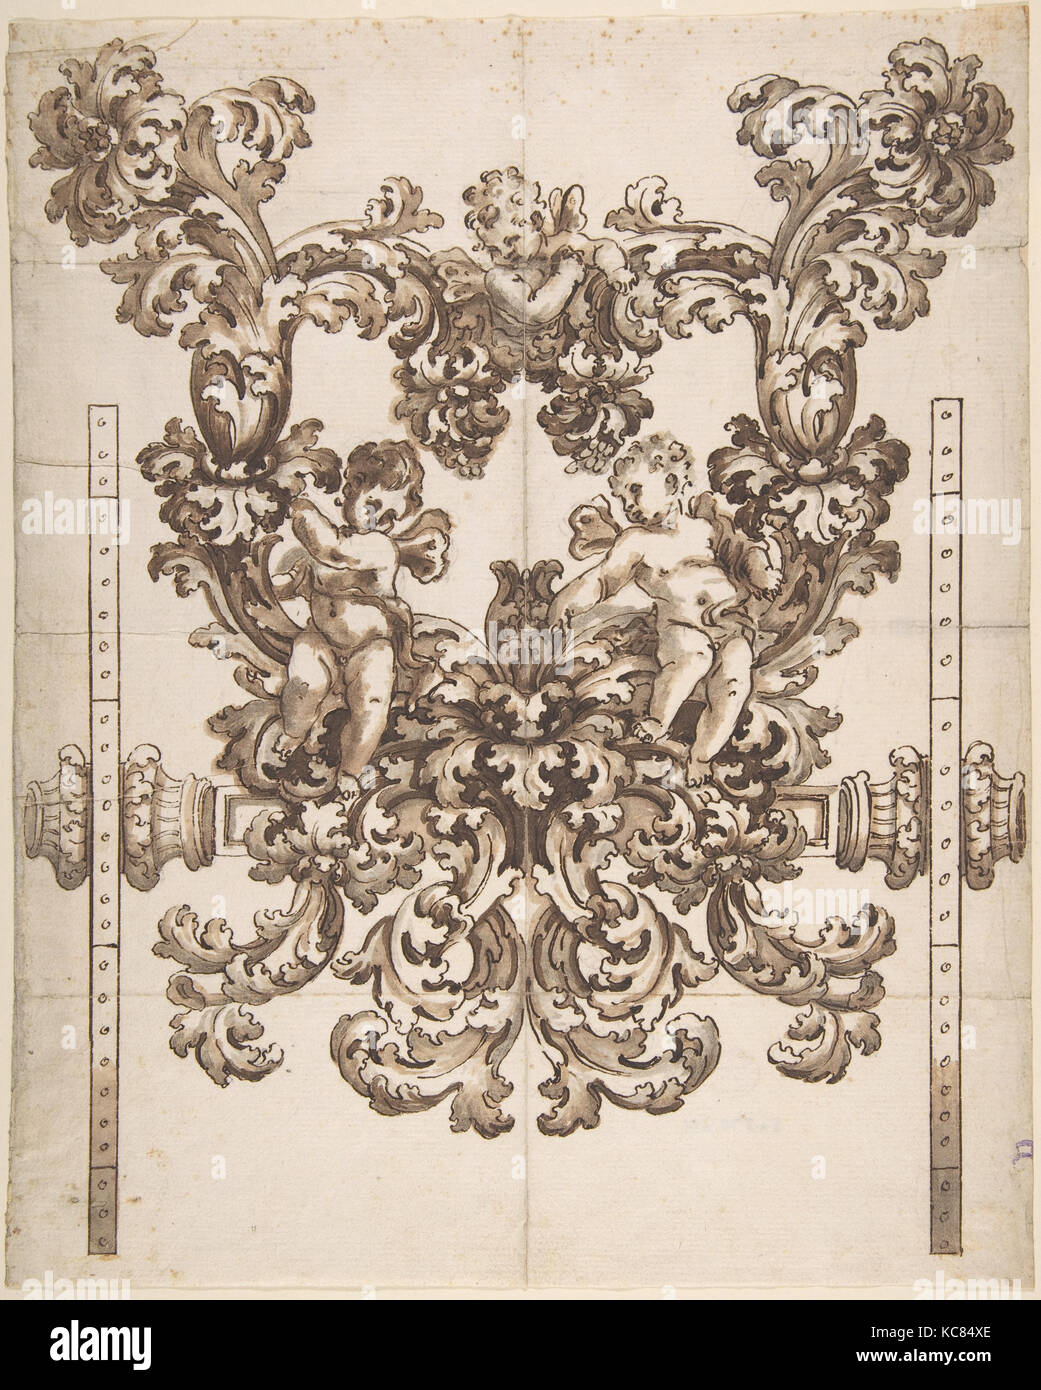 Rear View of an Elaborate Design for a Carved Wooden Carriage with Acanthus Leaves and Putti, Anonymous, Italian - Stock Image